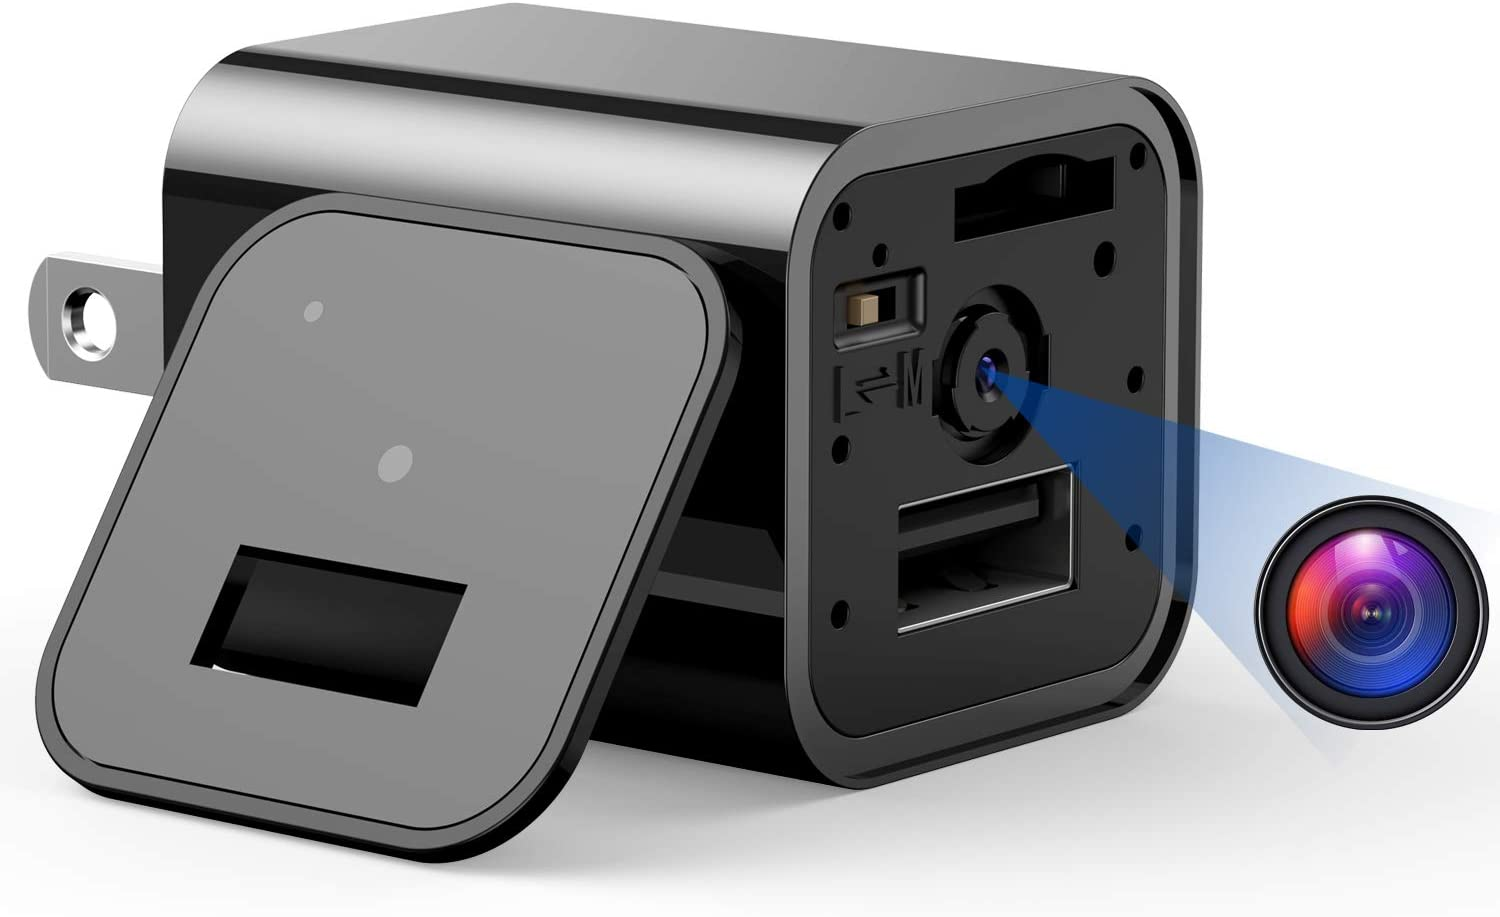 Mini Camera Charger - 1080P USB Hidden Camera, Nanny Camera with Motion Detection, Non WiFi Surveillance Camera for Indoor Outdoor, Covert Security Cameras